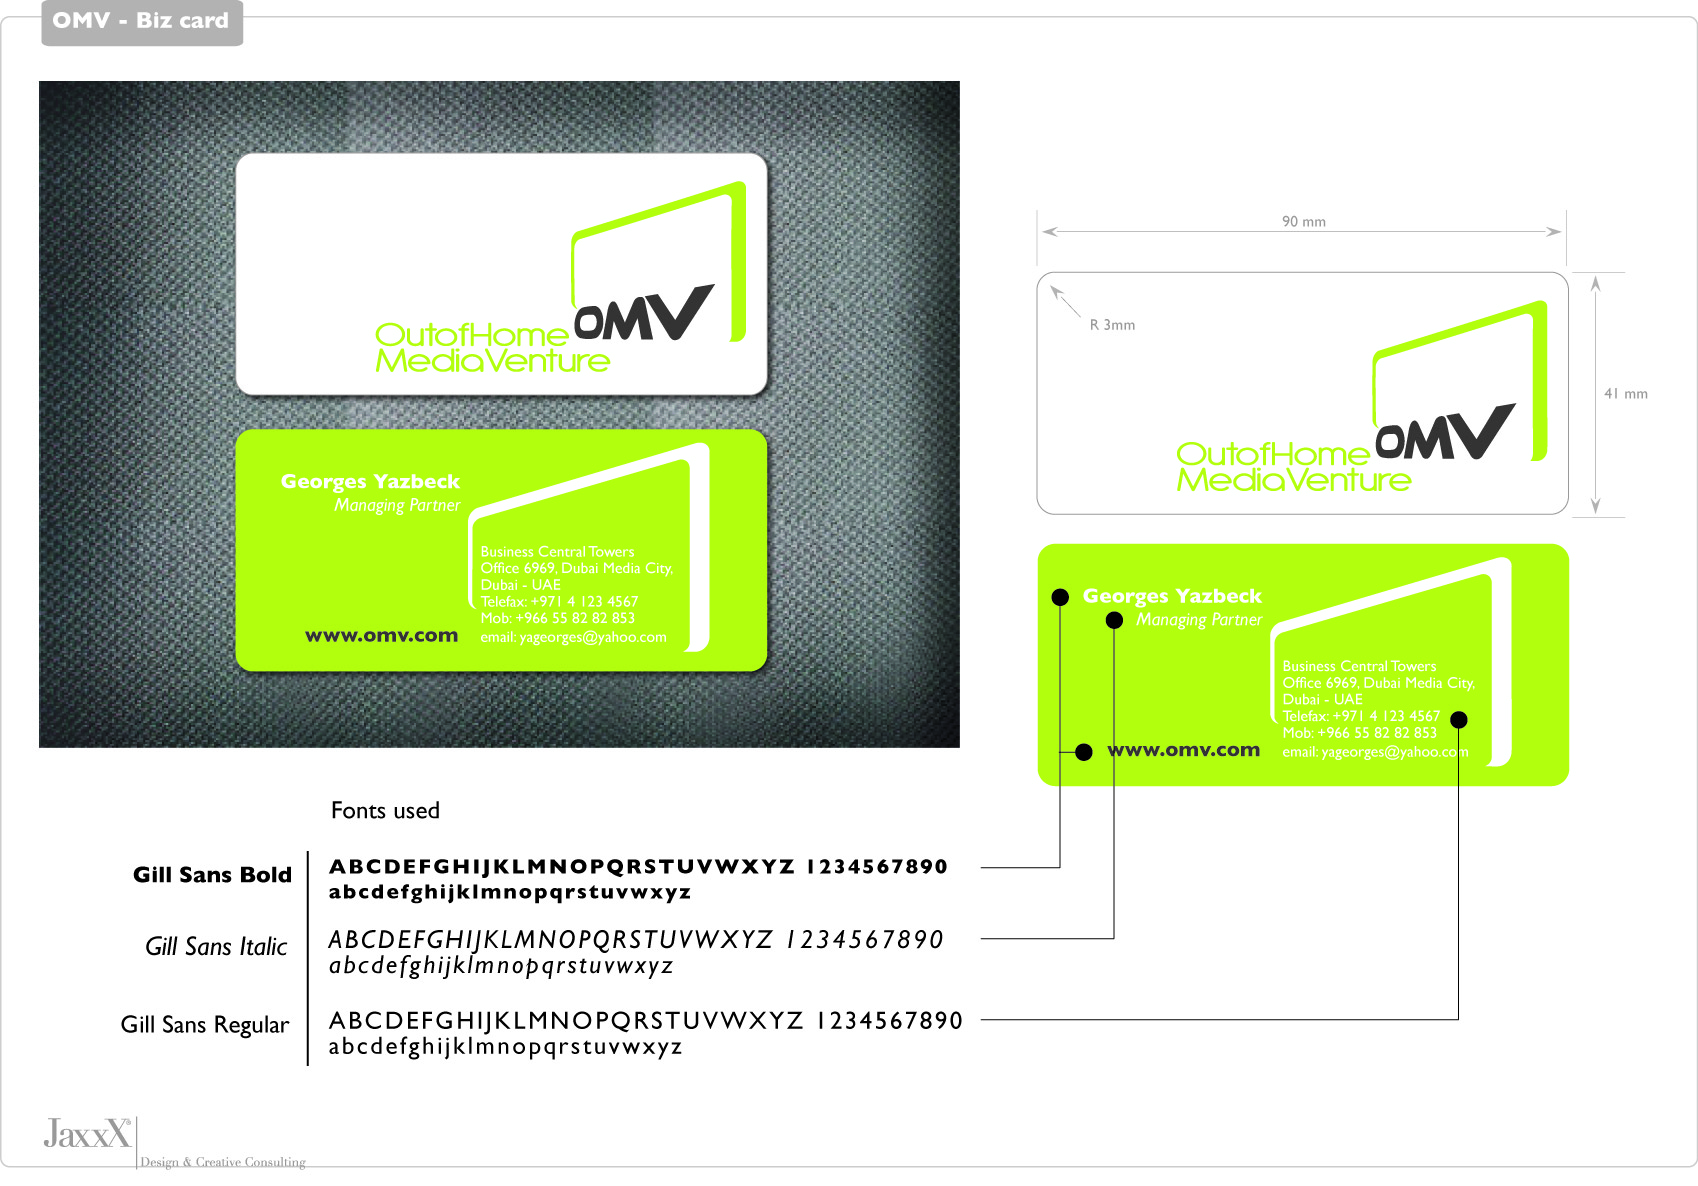 OMV - Biz Card_thumb.jpg